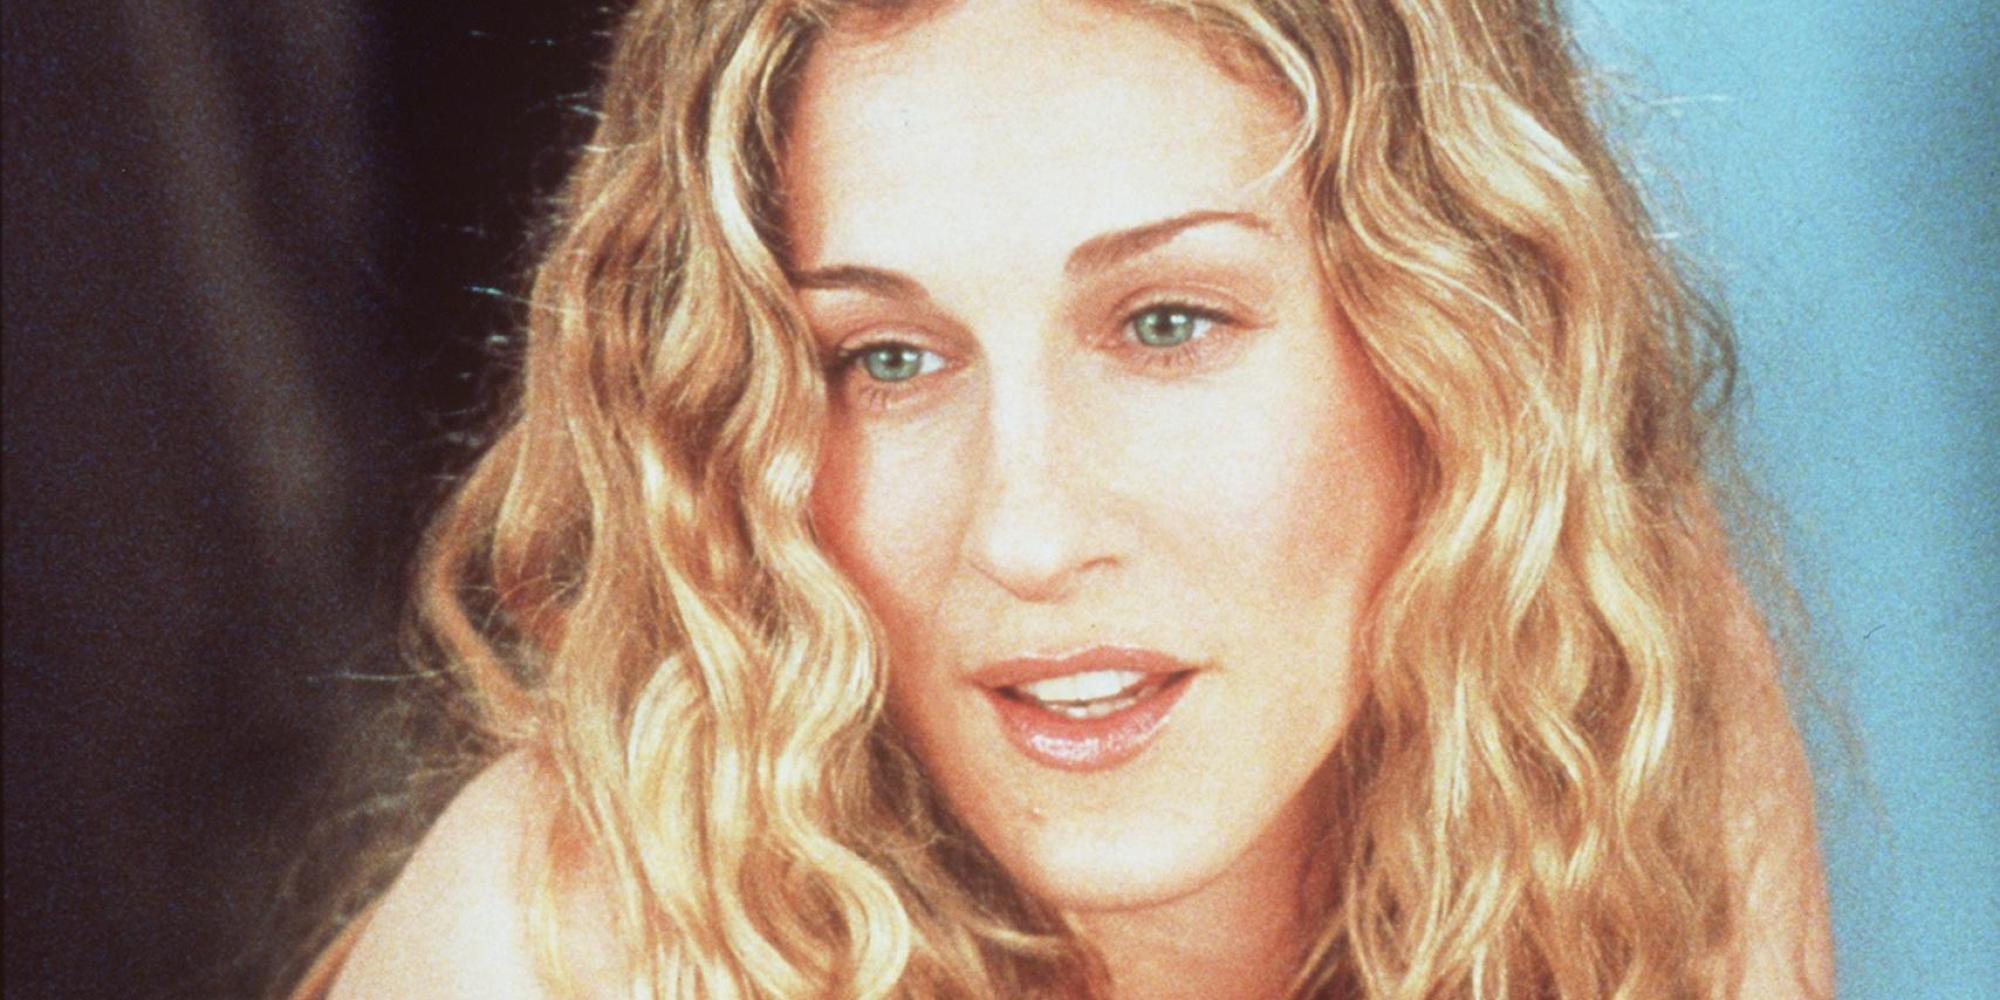 Carrie Bradshaw If Carrie Bradshaw Were Your Friend In Real Life You Would Roll